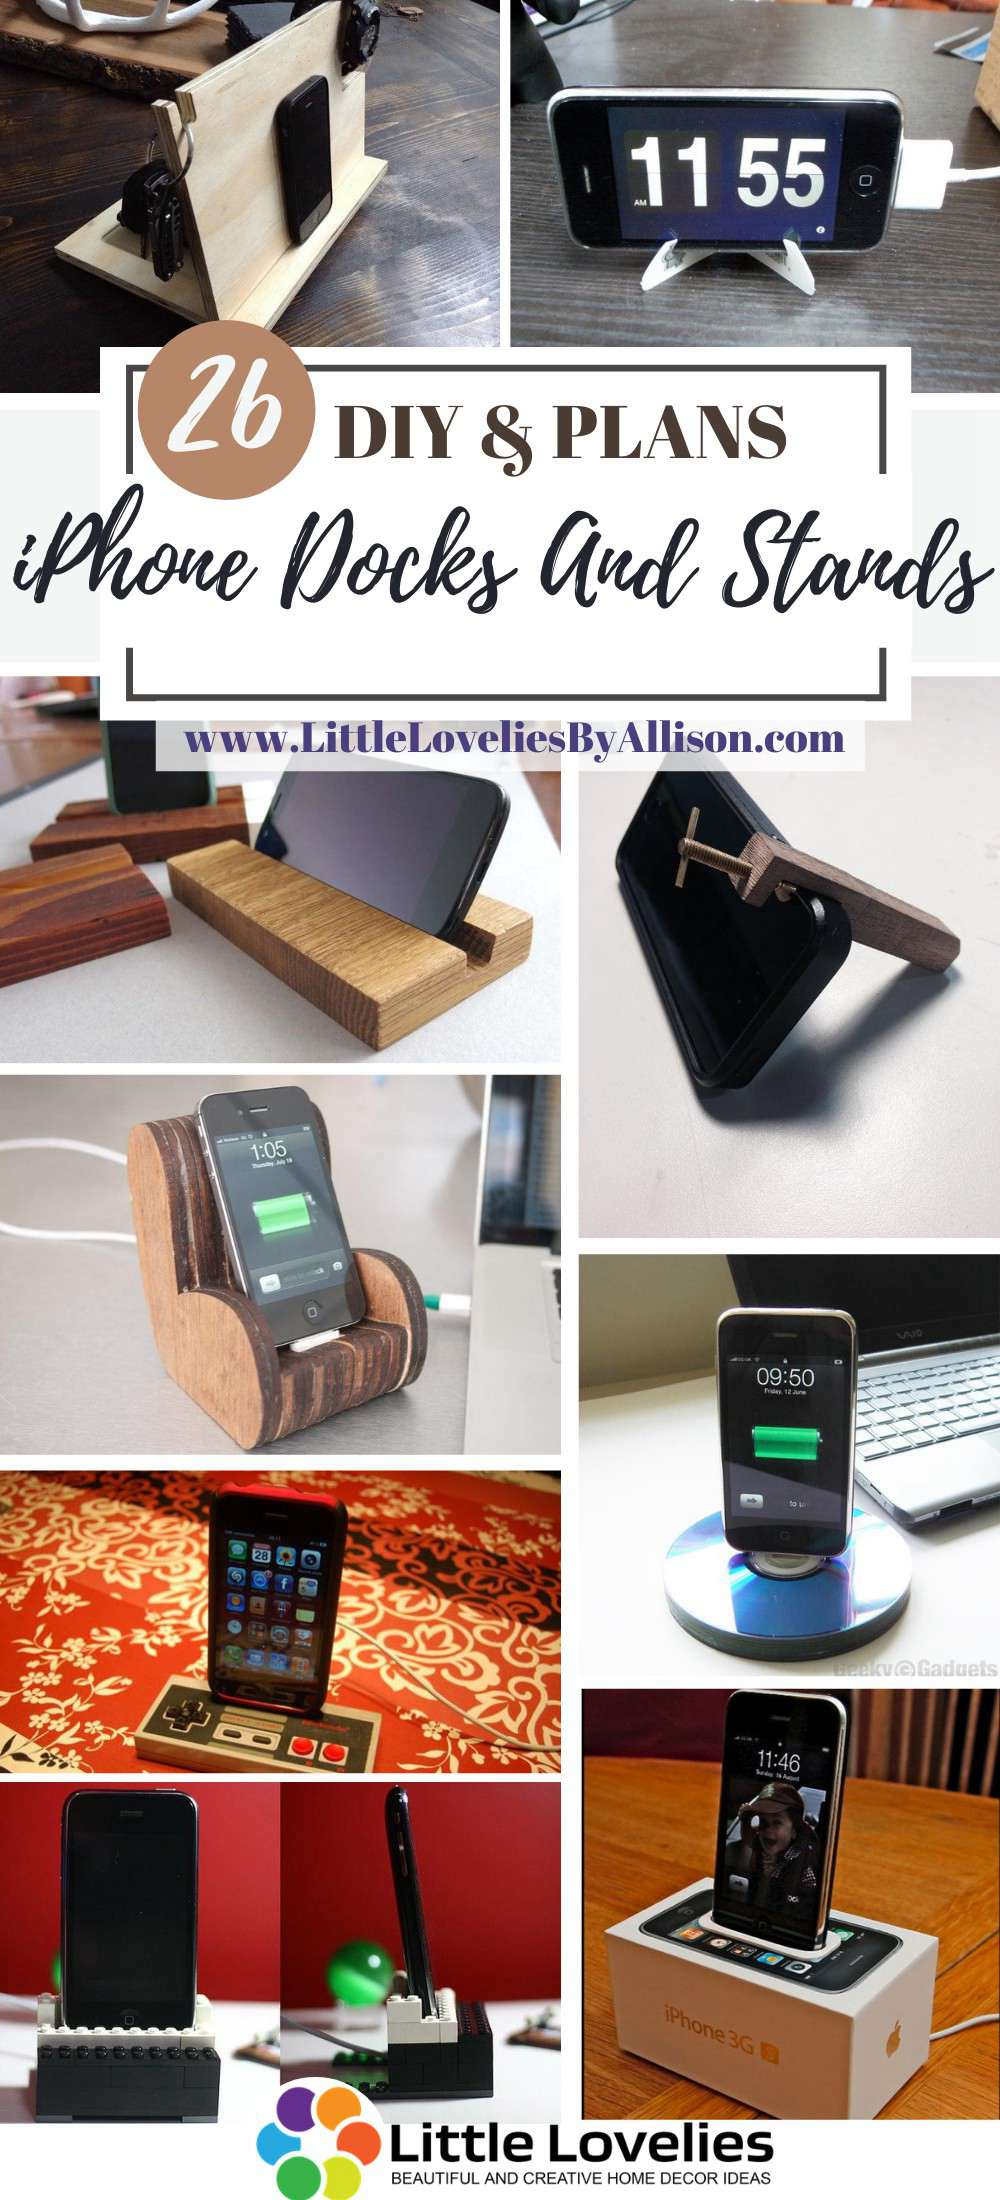 DIY-iPhone-Docks-And-Stands